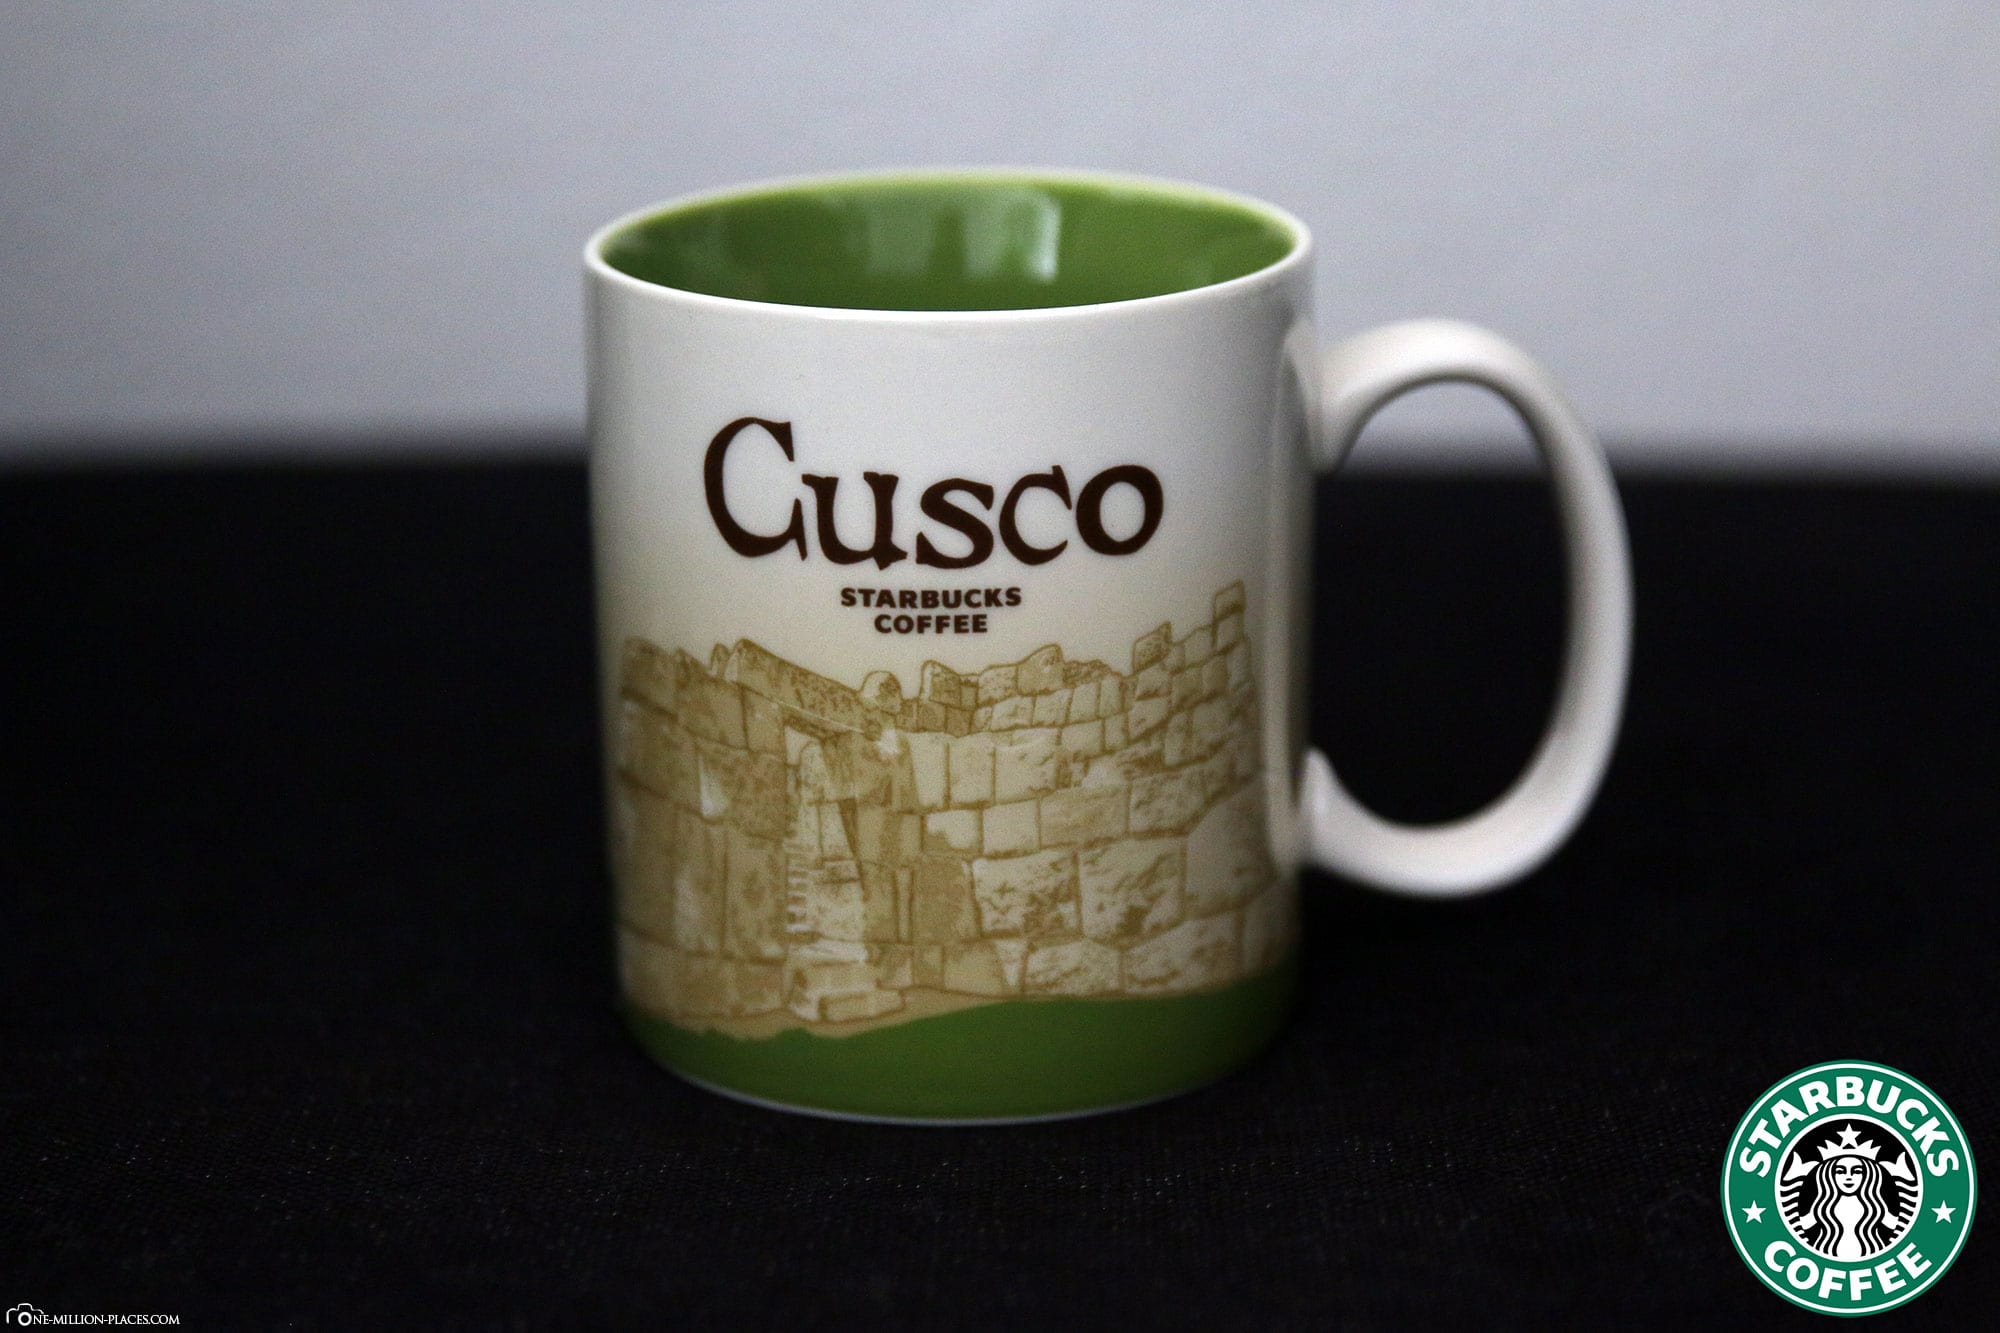 Cusco, Starbucks Cup, Global Icon Series, City Mugs, Collection, Peru, Travelreport